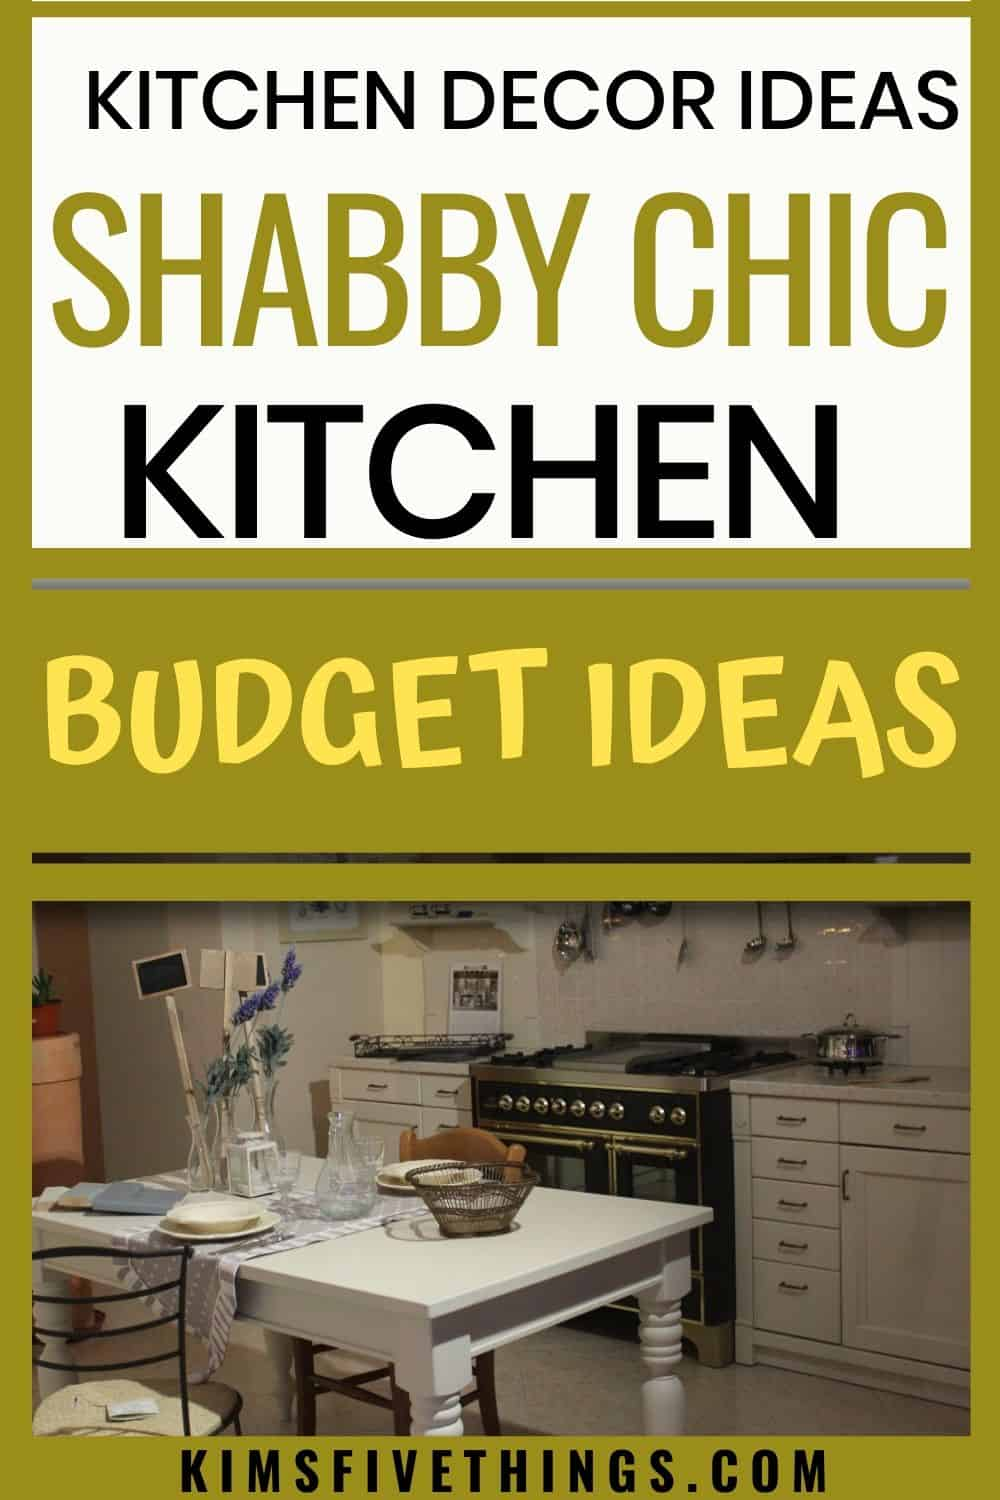 Shabby Chic Kitchen Ideas On A Budget Home Ideas